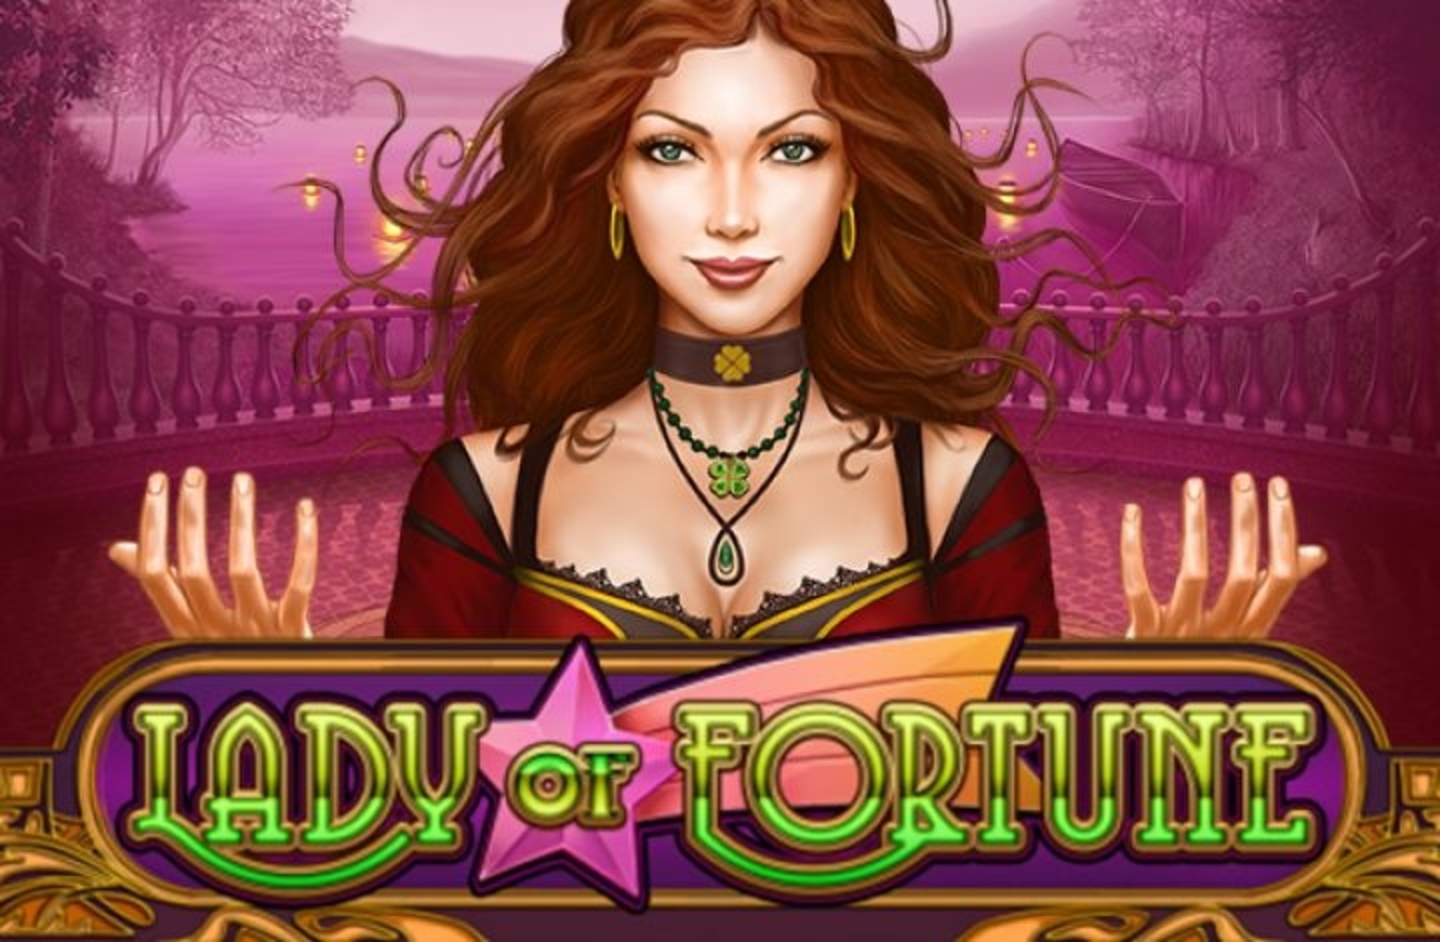 The Lady of Fortune Online Slot Demo Game by Playn GO